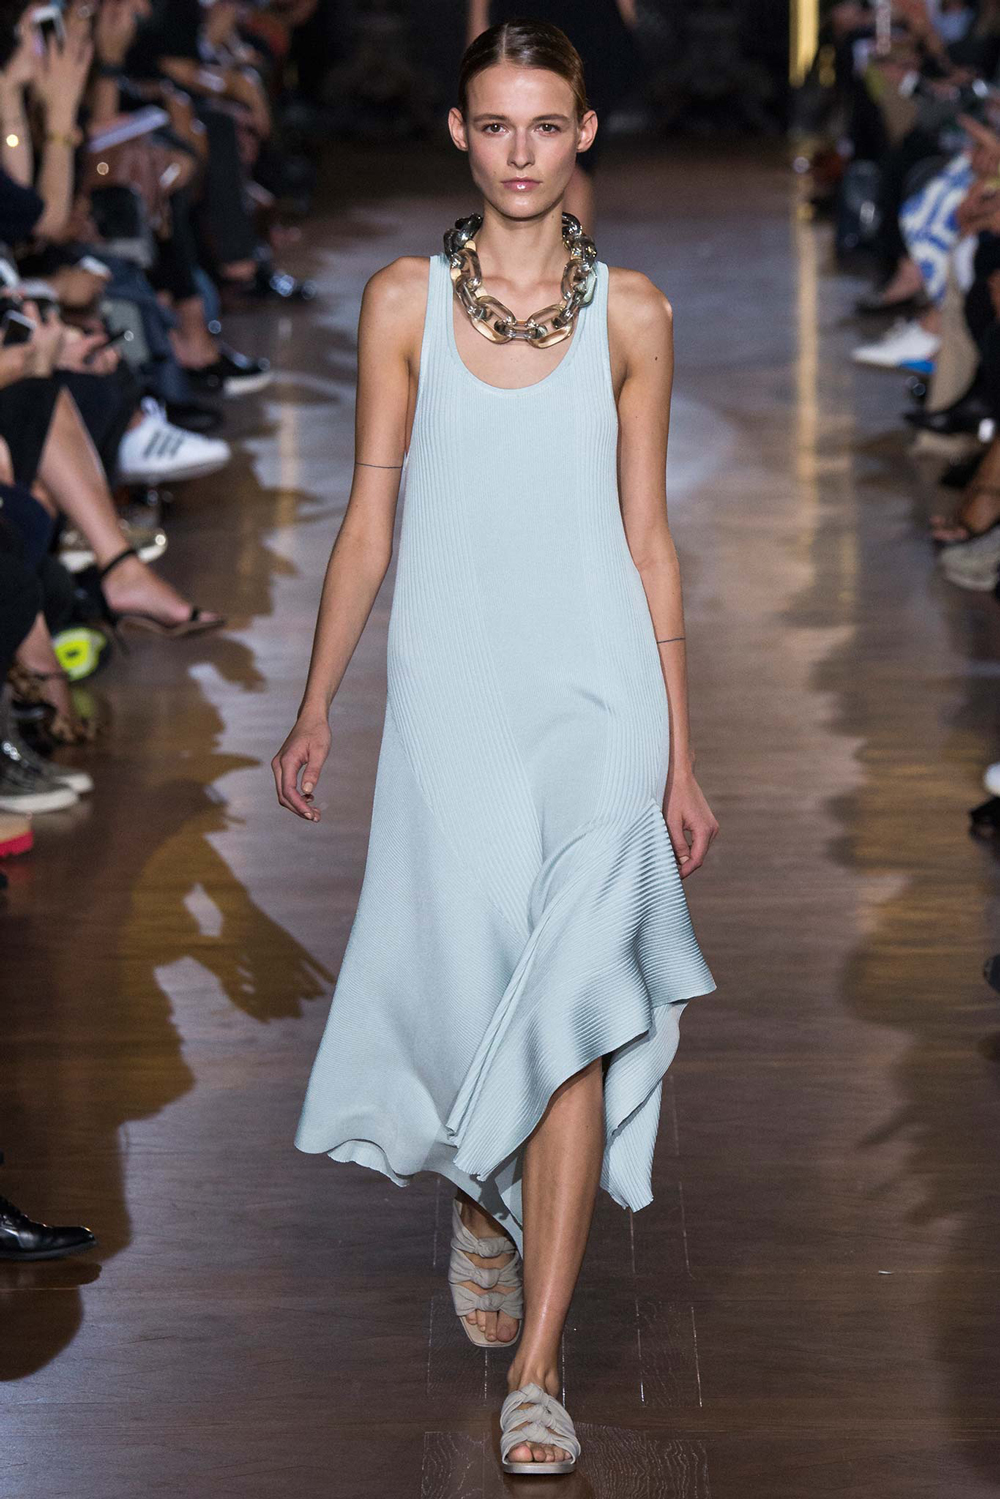 Pantone Colour Report Spring 2015 trends / aquamarine / how to wear aquamarine / outfit ideas / fashion collections S/S 2015 / Stella McCartney Spring 2015 / via fashioned by love british fashion blog